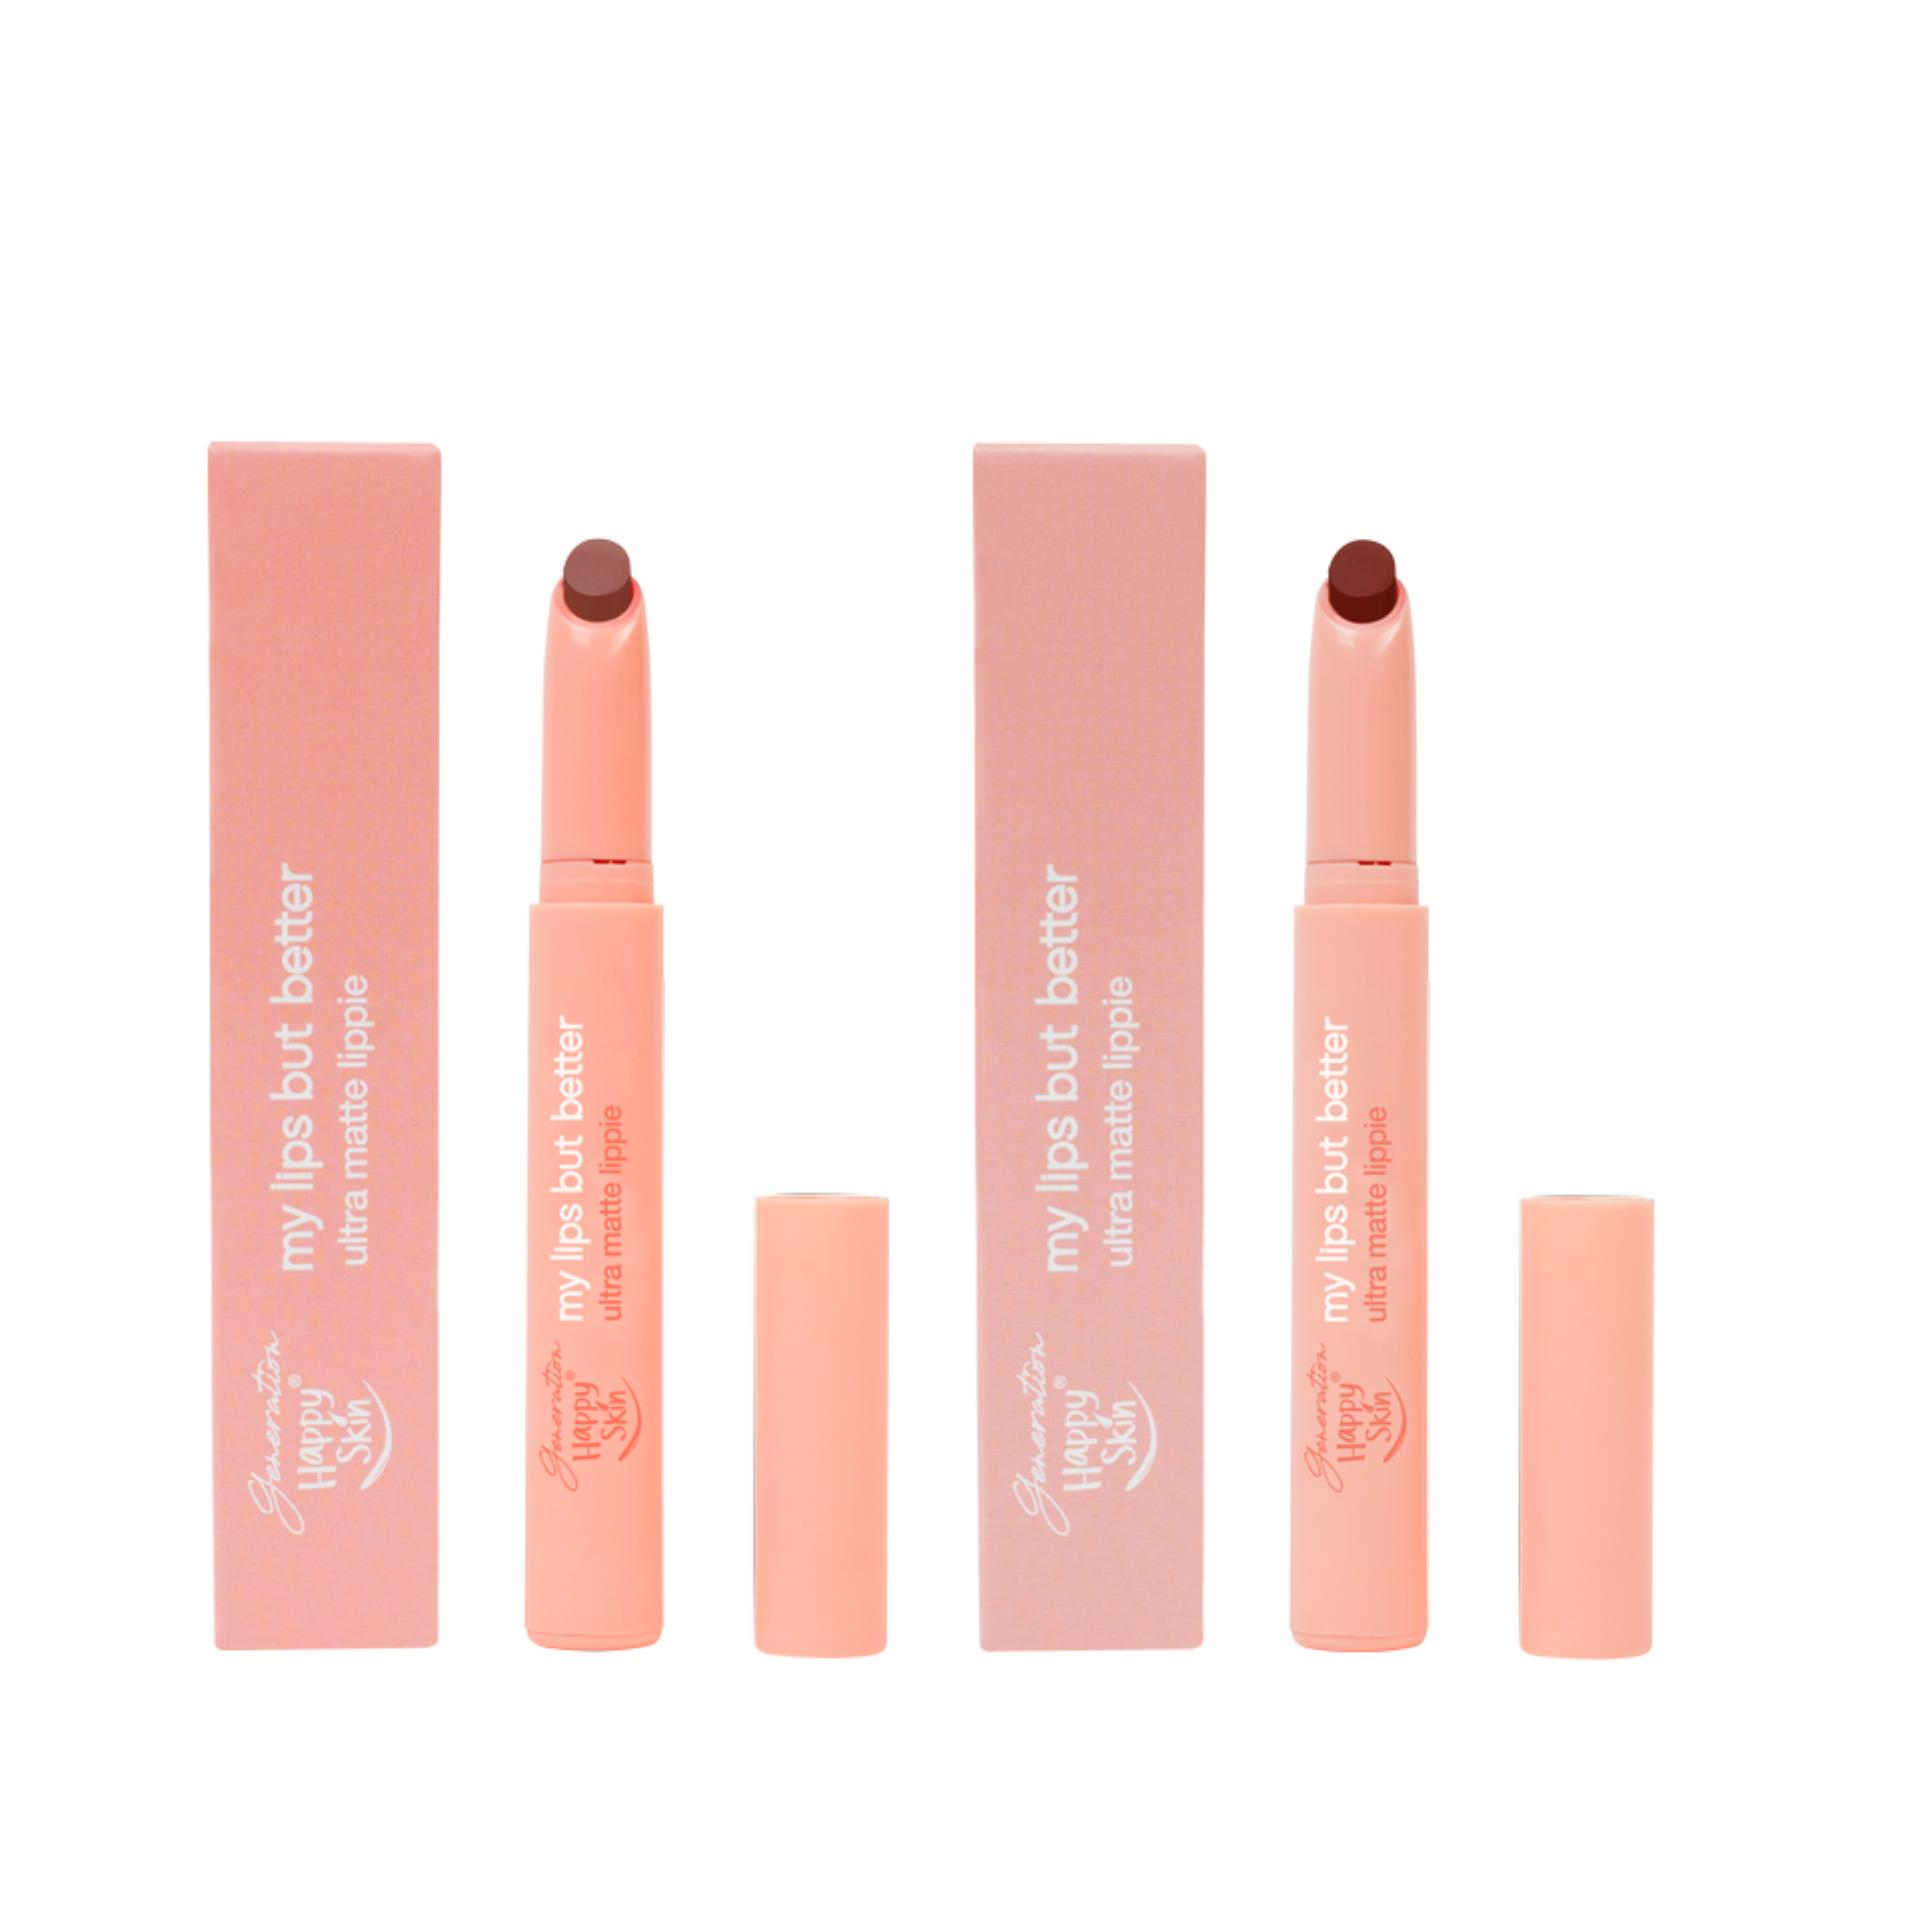 NEW! MLBB Ultra Matte Lippie Holiday Set  in Purity and Simplicity Philippines